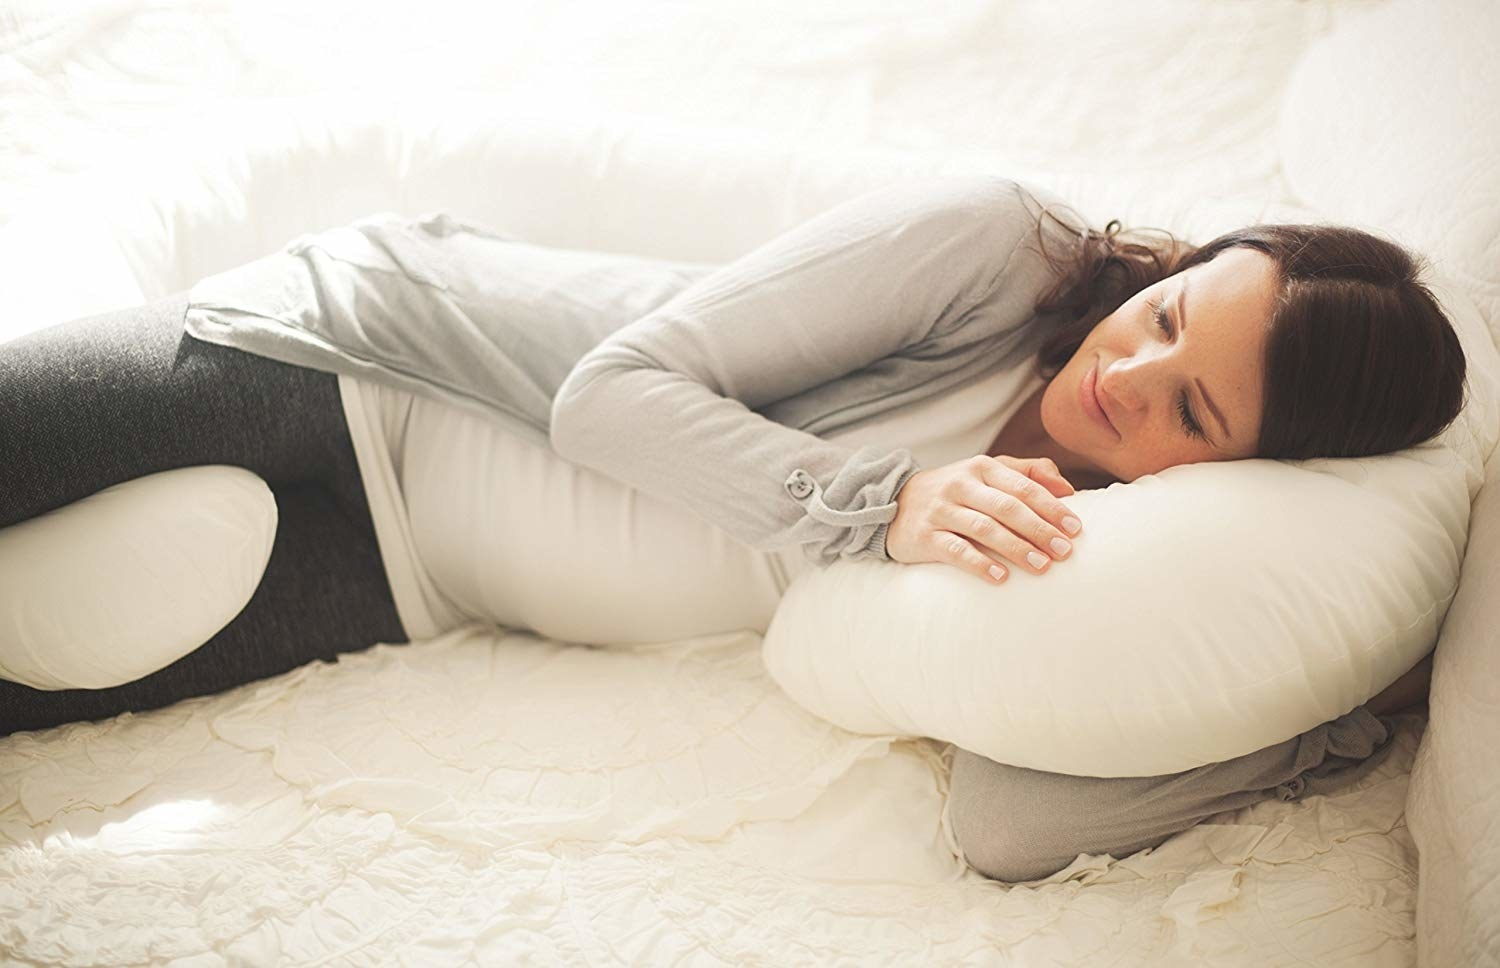 model snuggling with c-shaped pillow that supports under head and between thighs